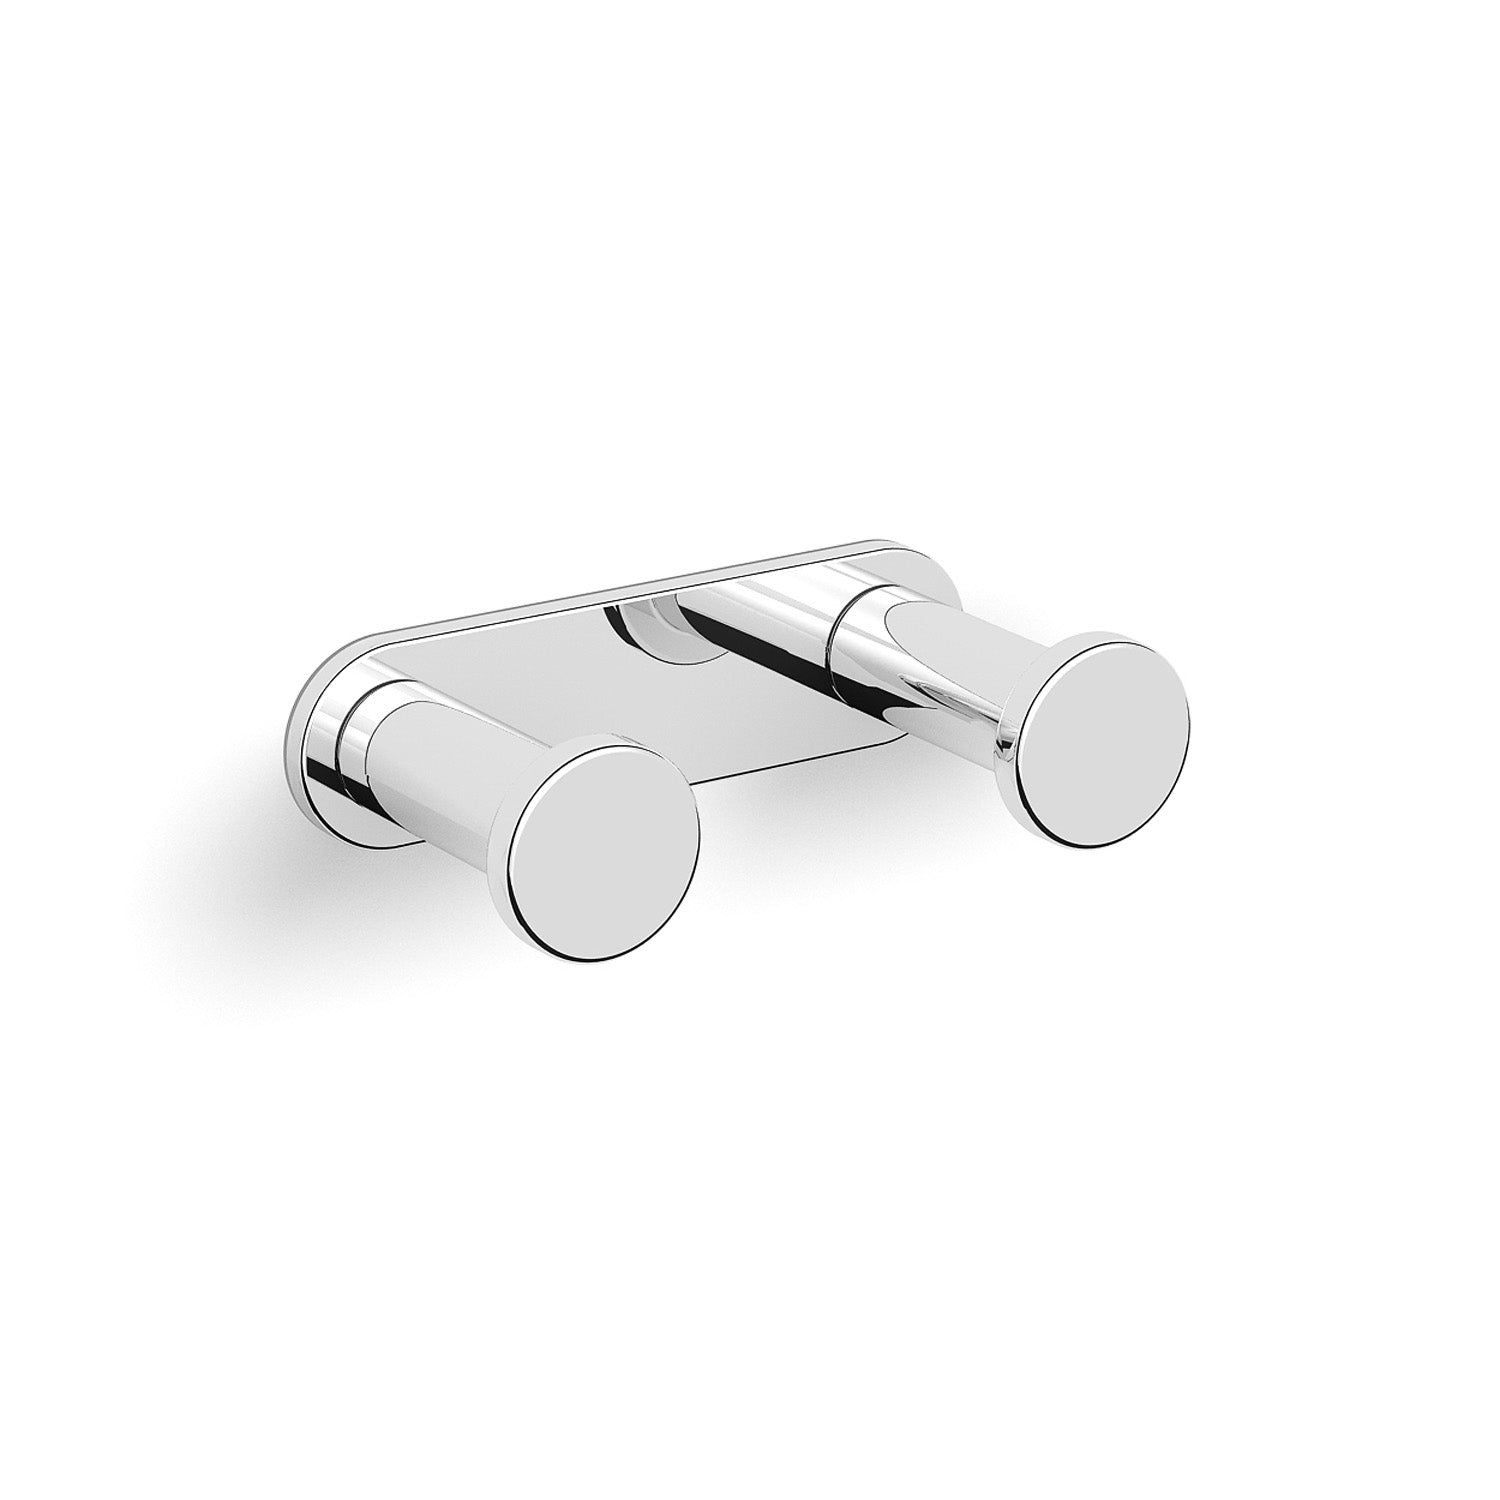 Double Modale Robe Hook with a chrome finish on a white background